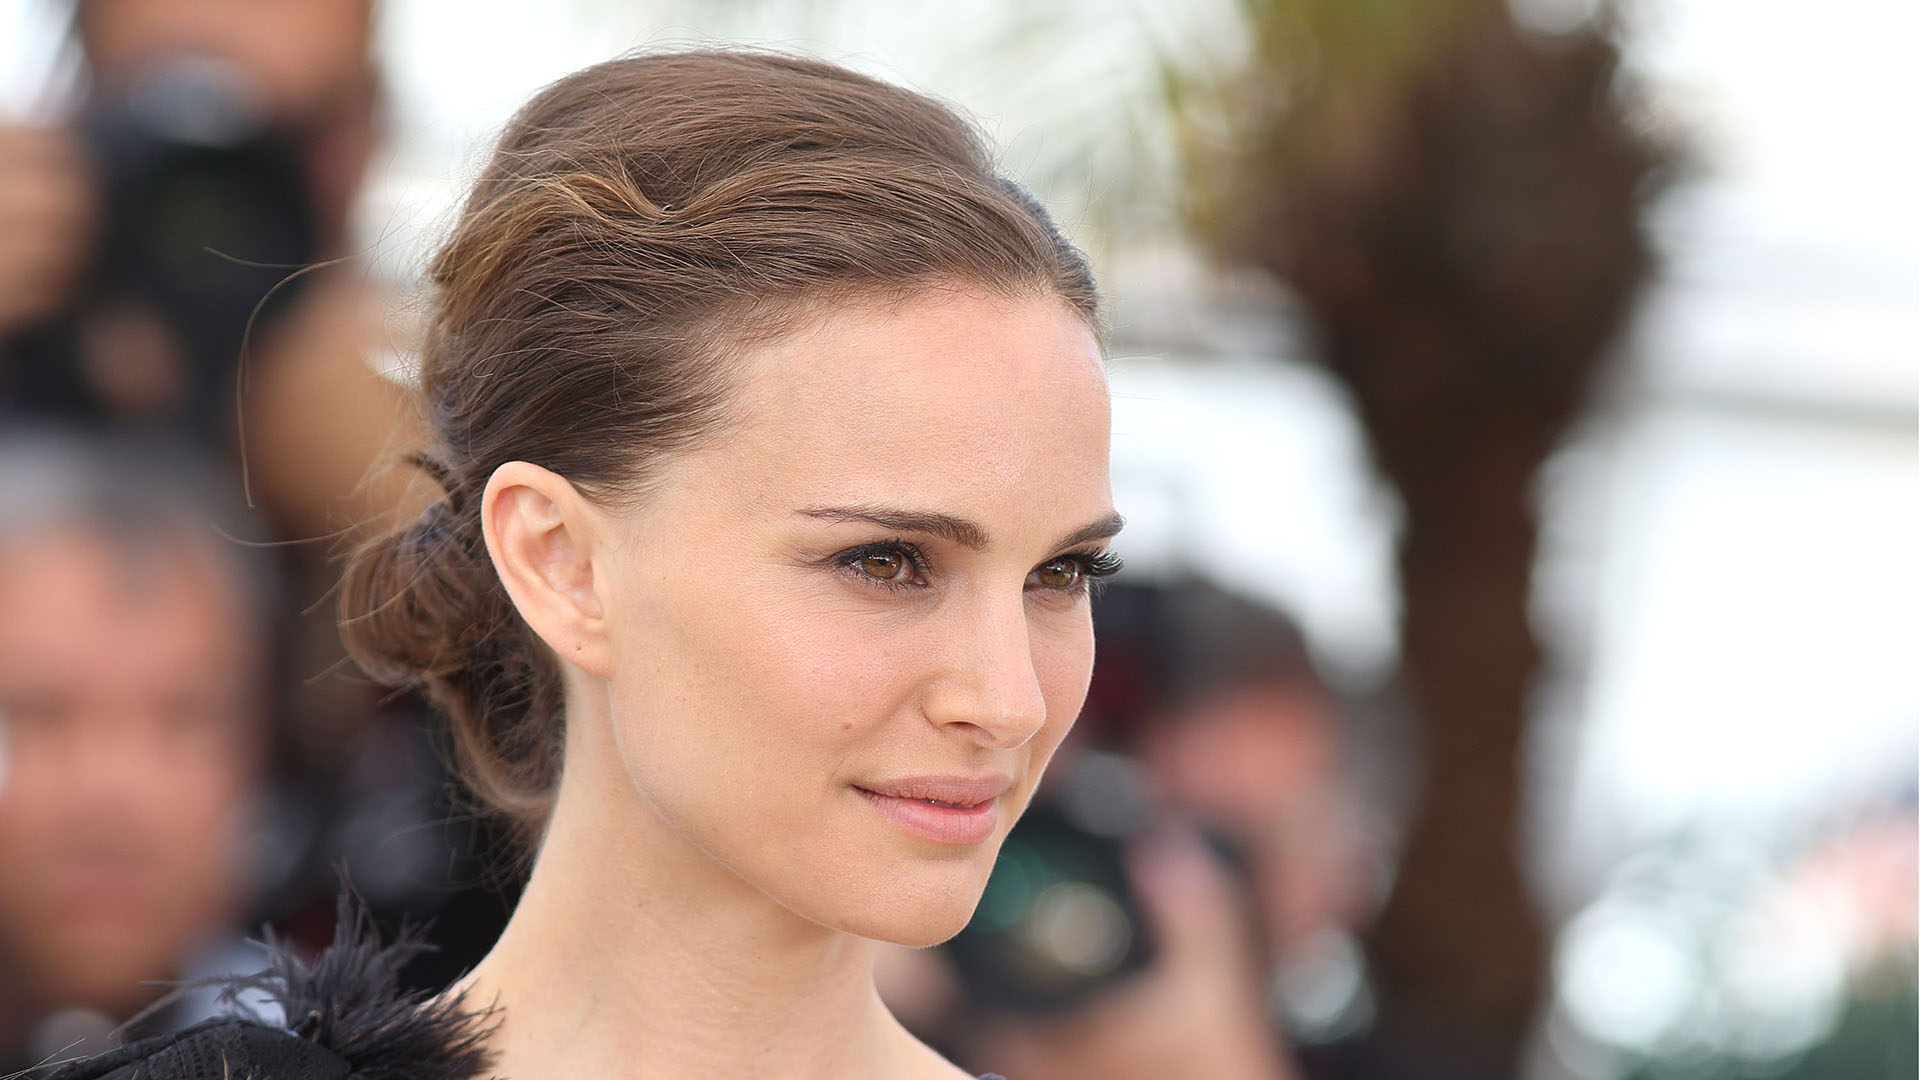 Natalie Portman's skin care routine, and how going vegan helped